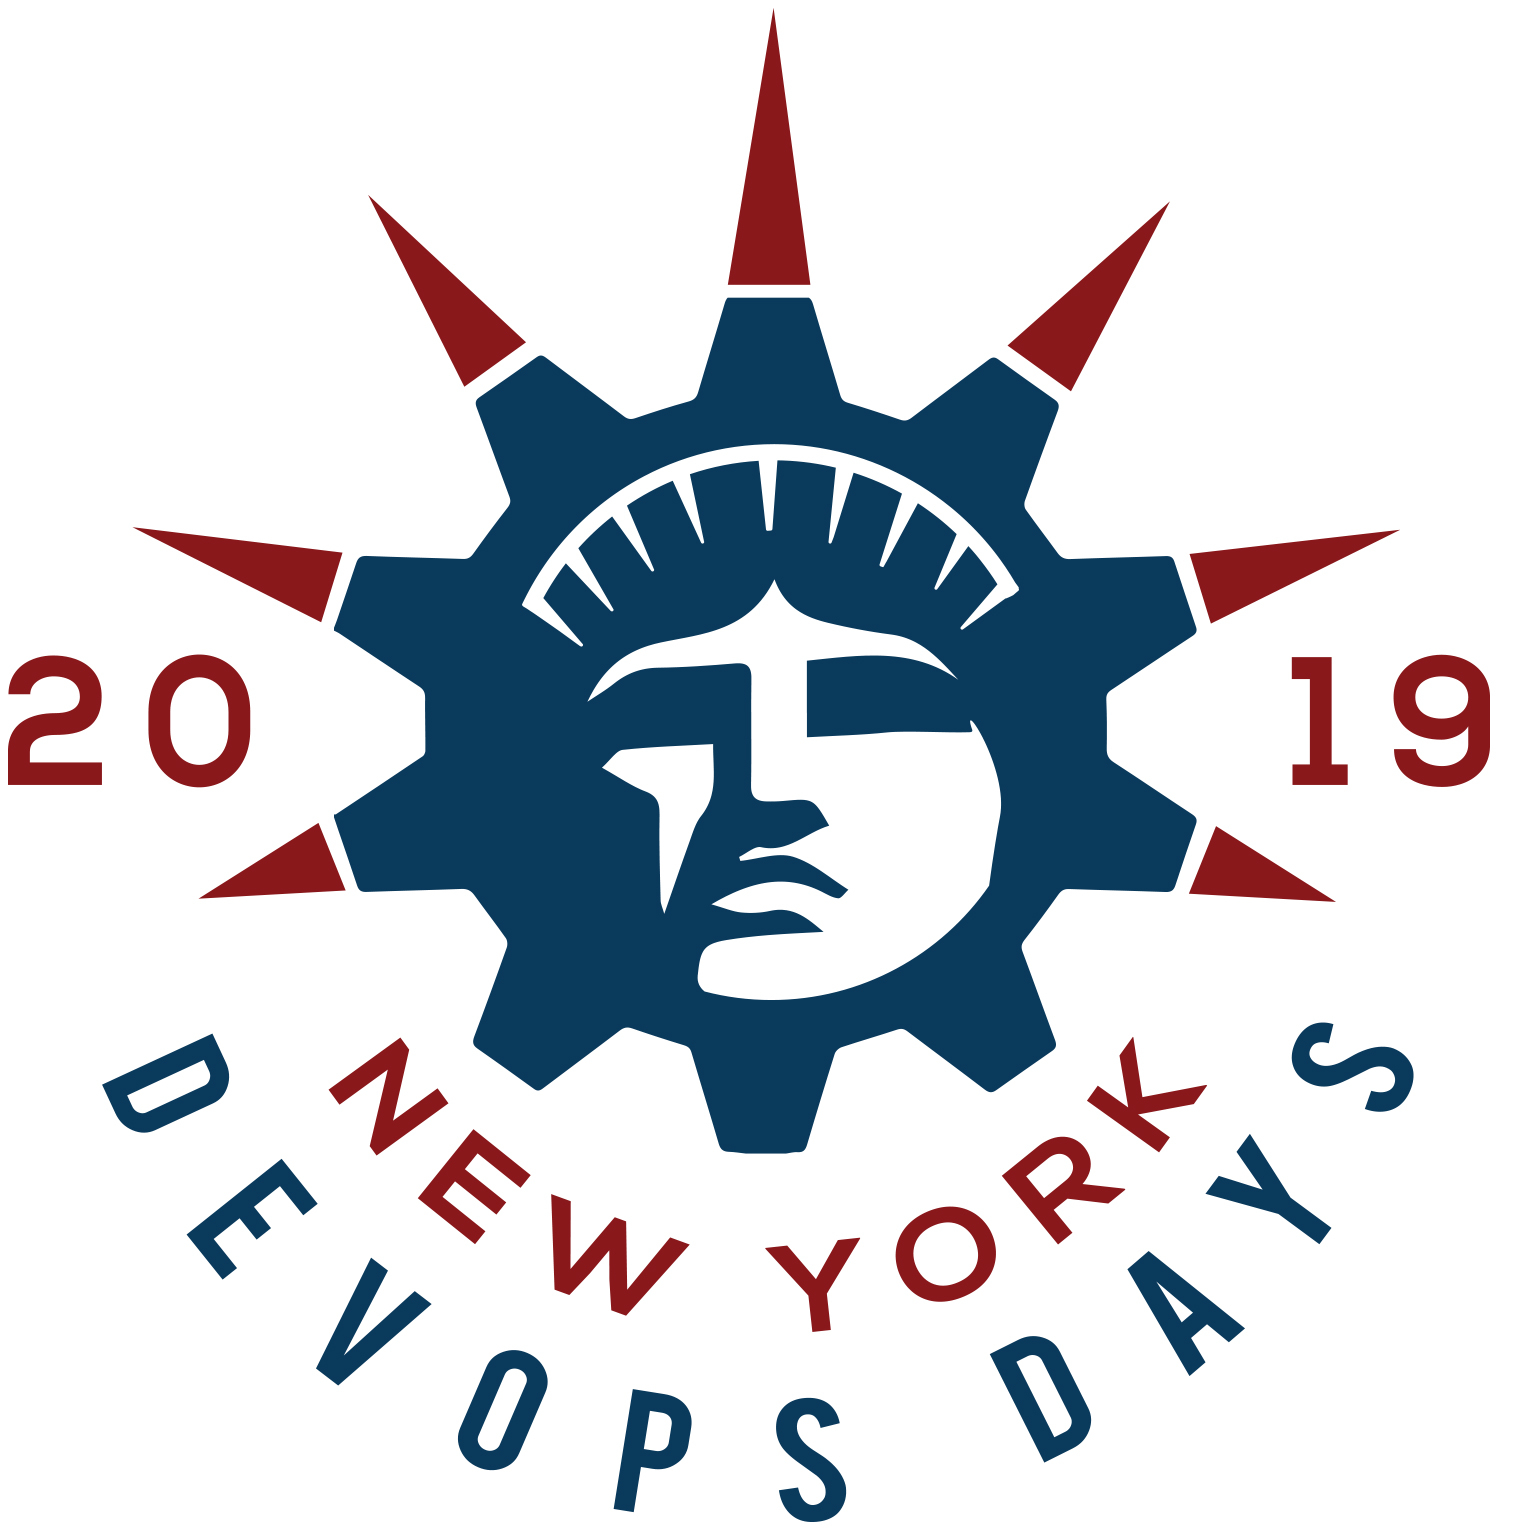 devopsdays New York City